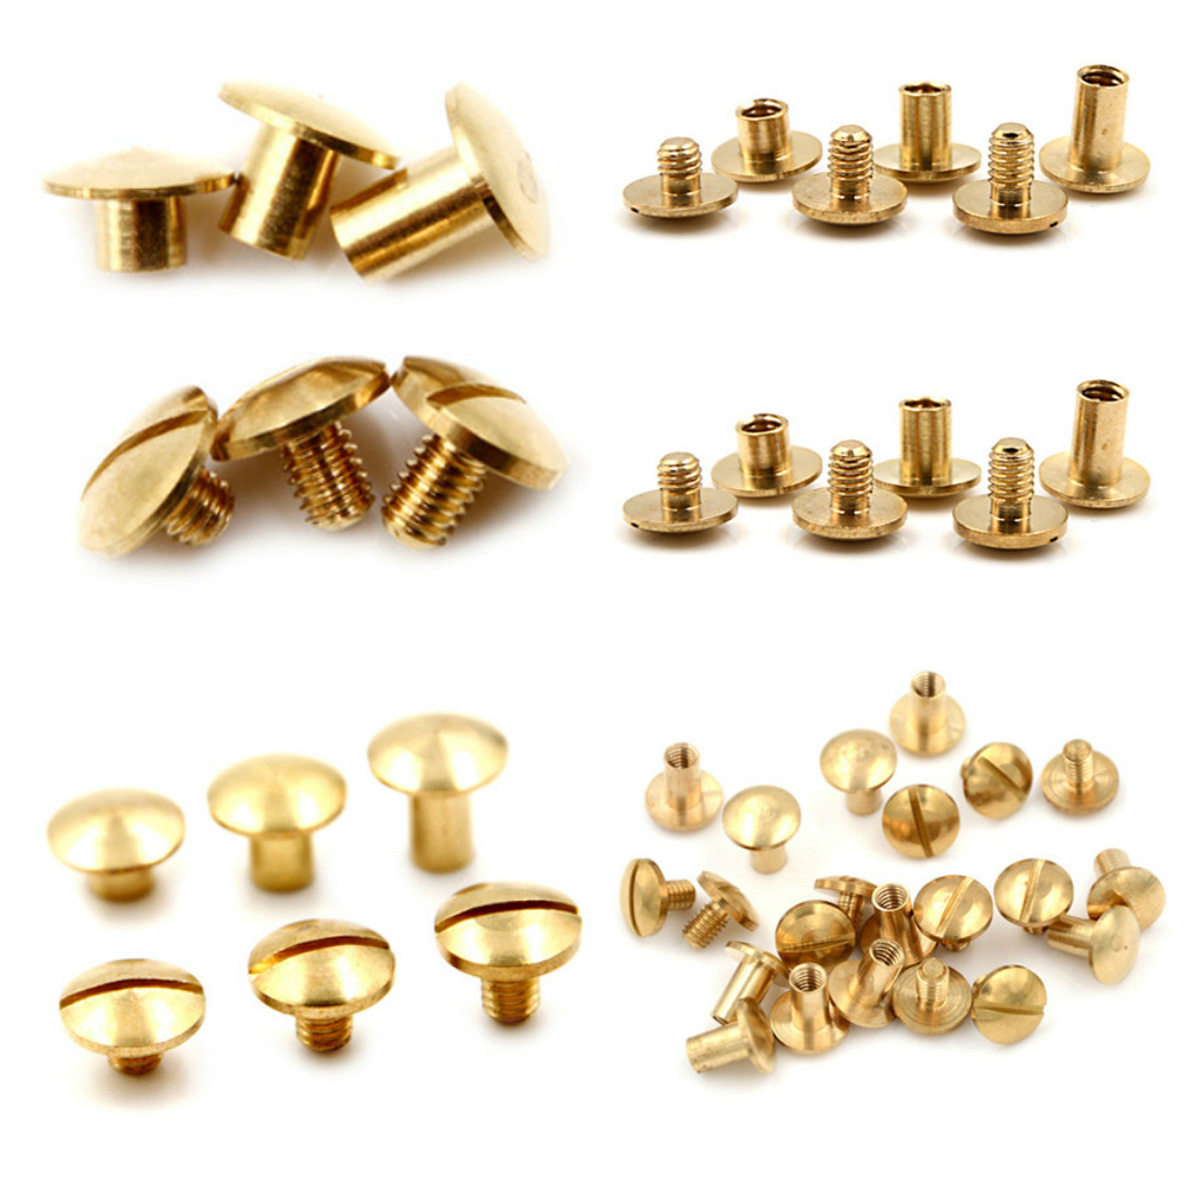 10pcs 4 6 8mm Round Head Button Screw In Button Studs For Bag Belt Leathercraft Durable Leather Solid Brass Belt Bag Rivet